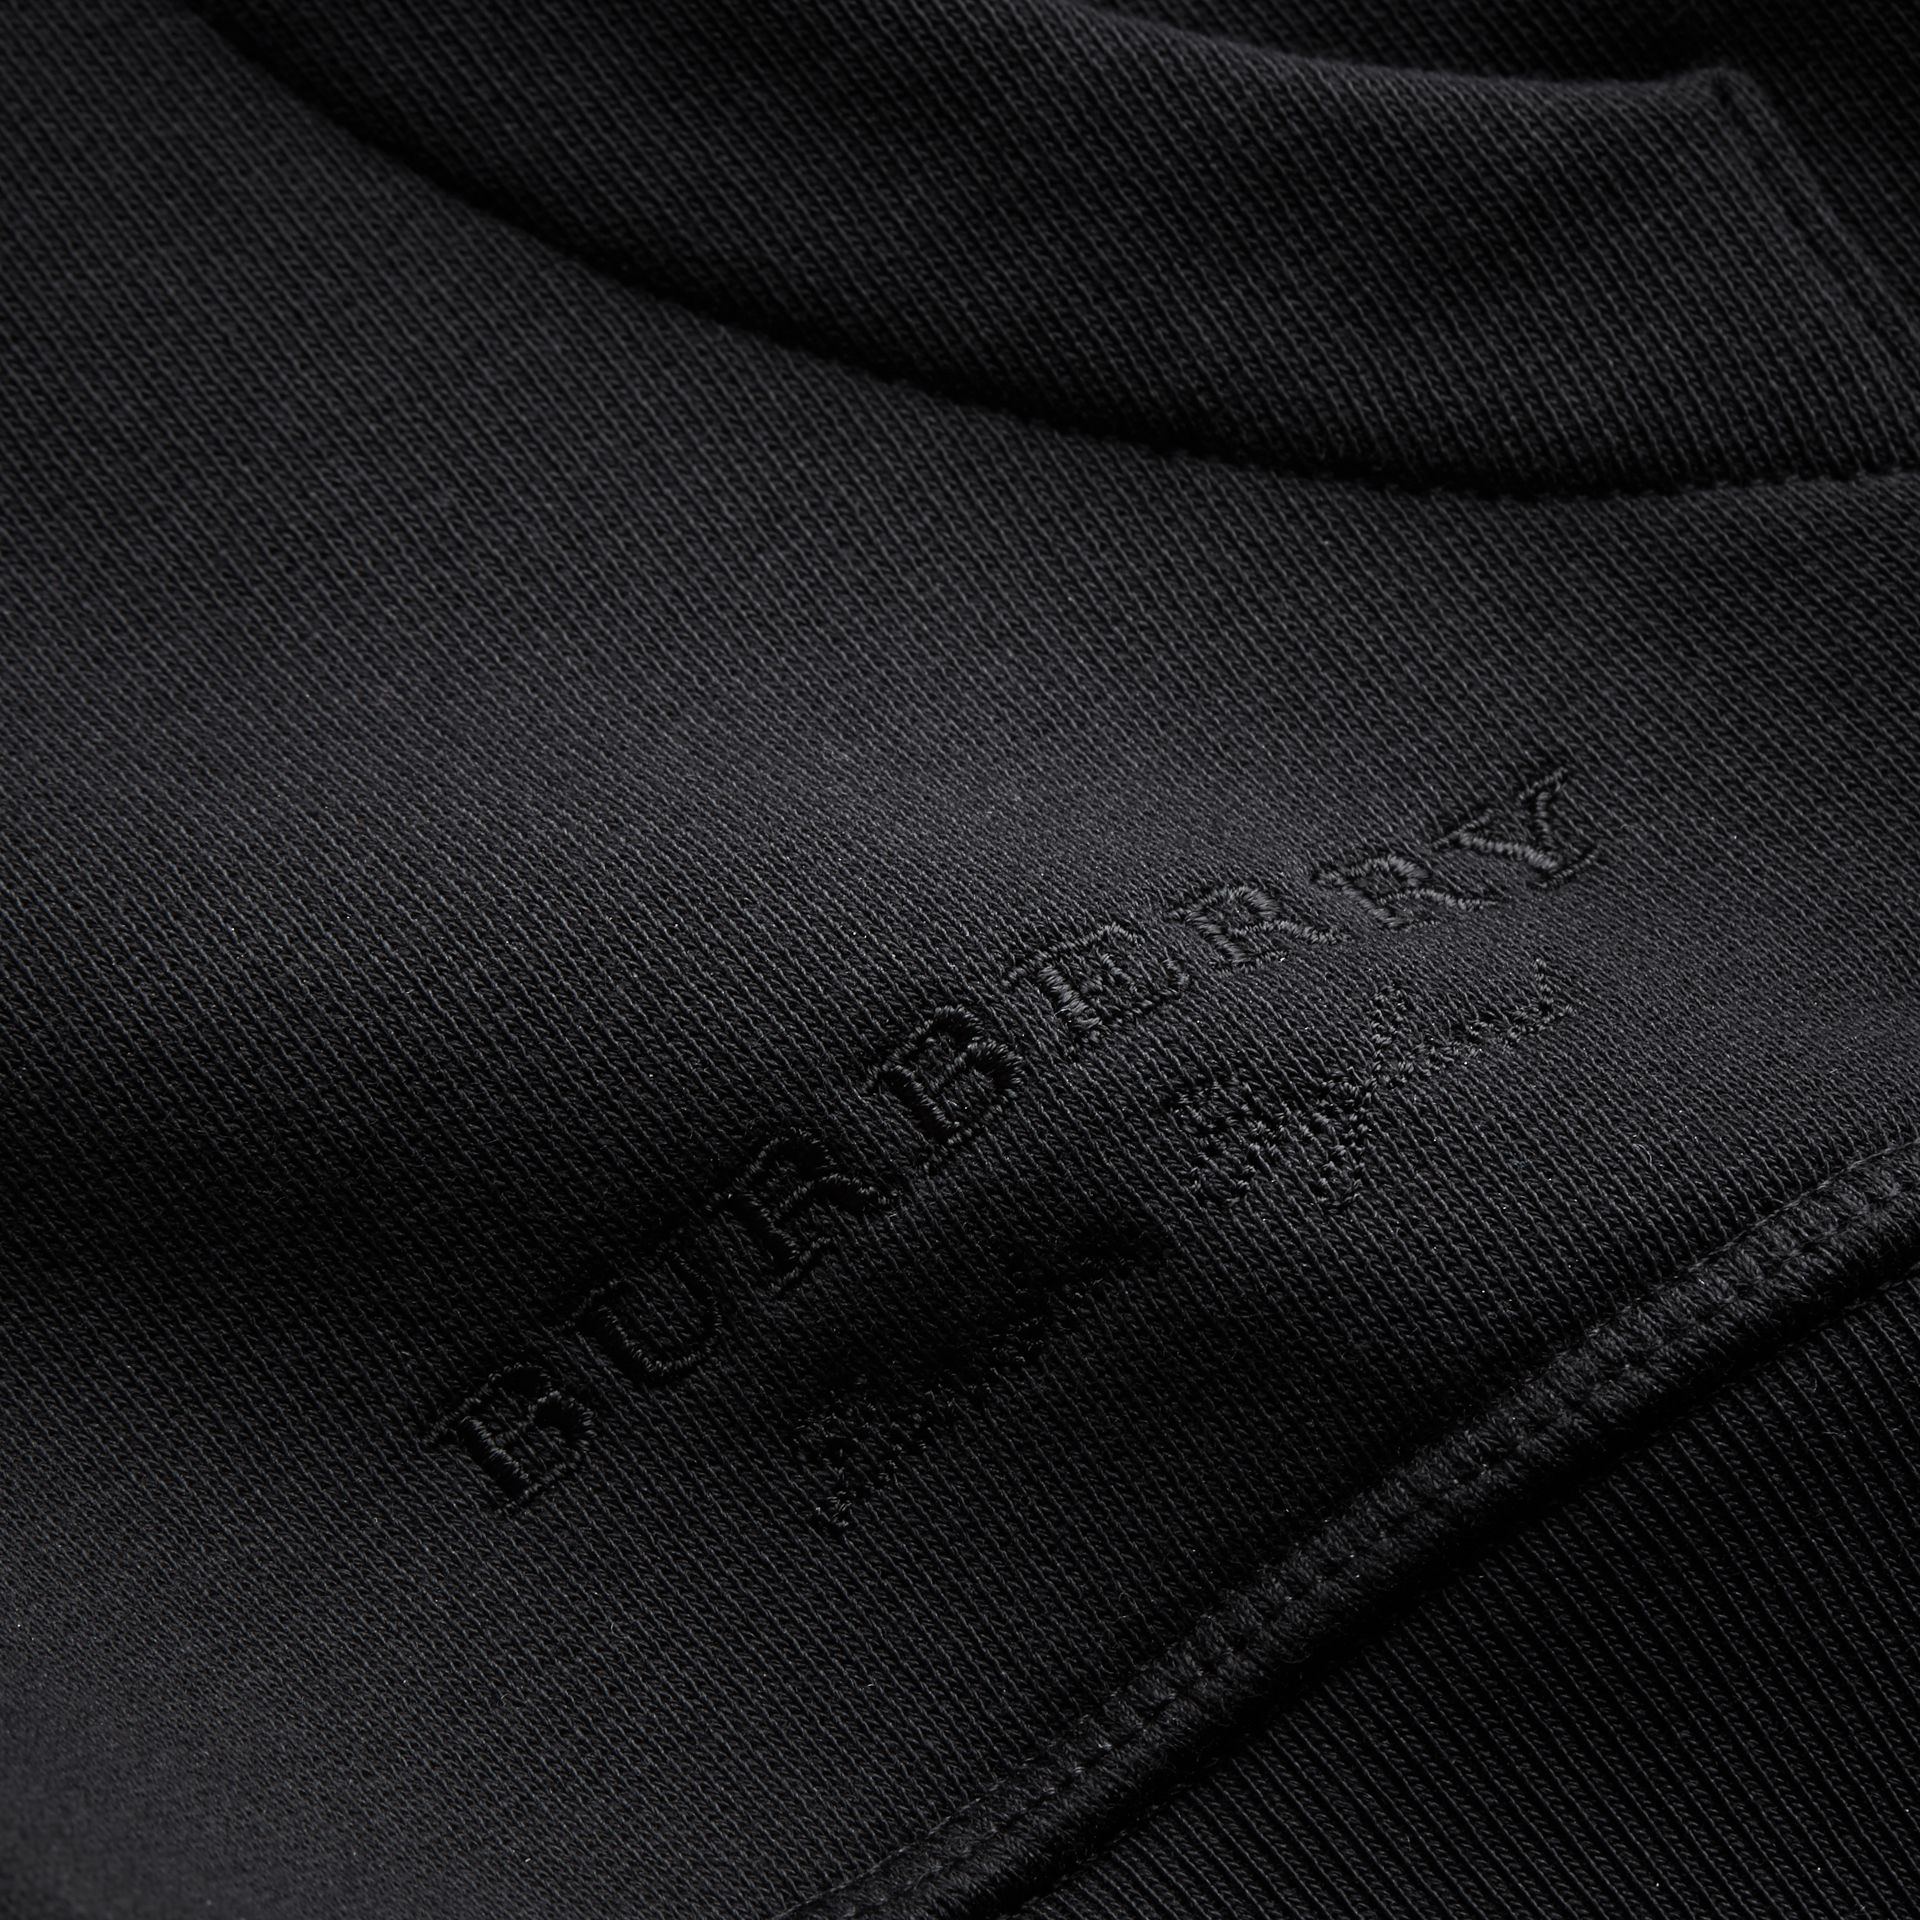 Pallas Helmet Cotton Blend Jersey Hooded Top in Black - Men | Burberry - gallery image 2